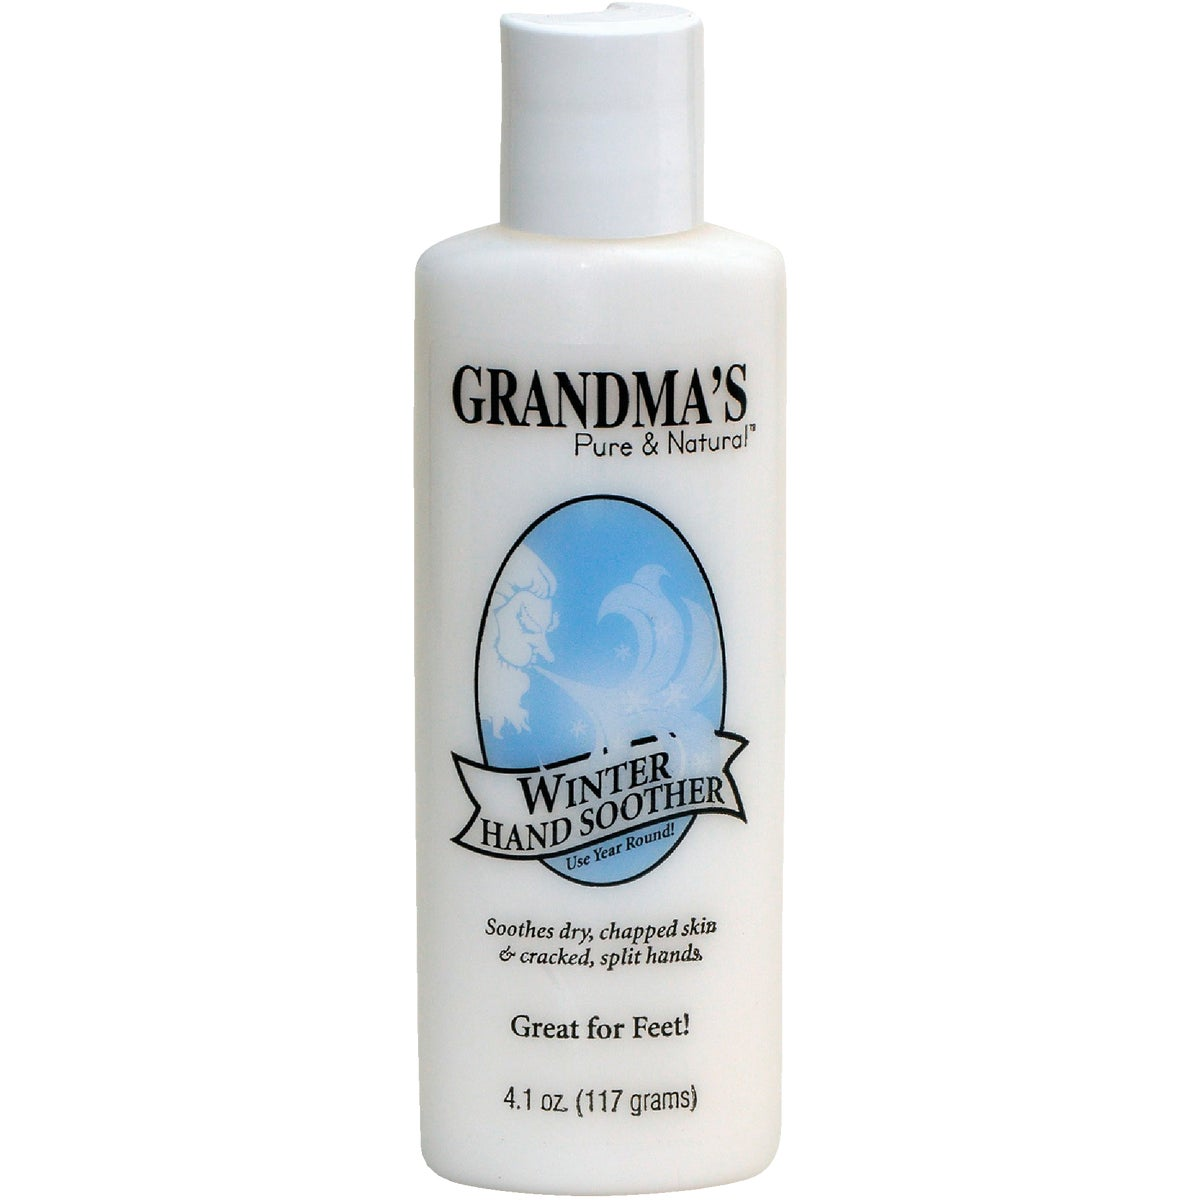 4.1OZ HAND LOTION - 53124 by Remwood Prod Co